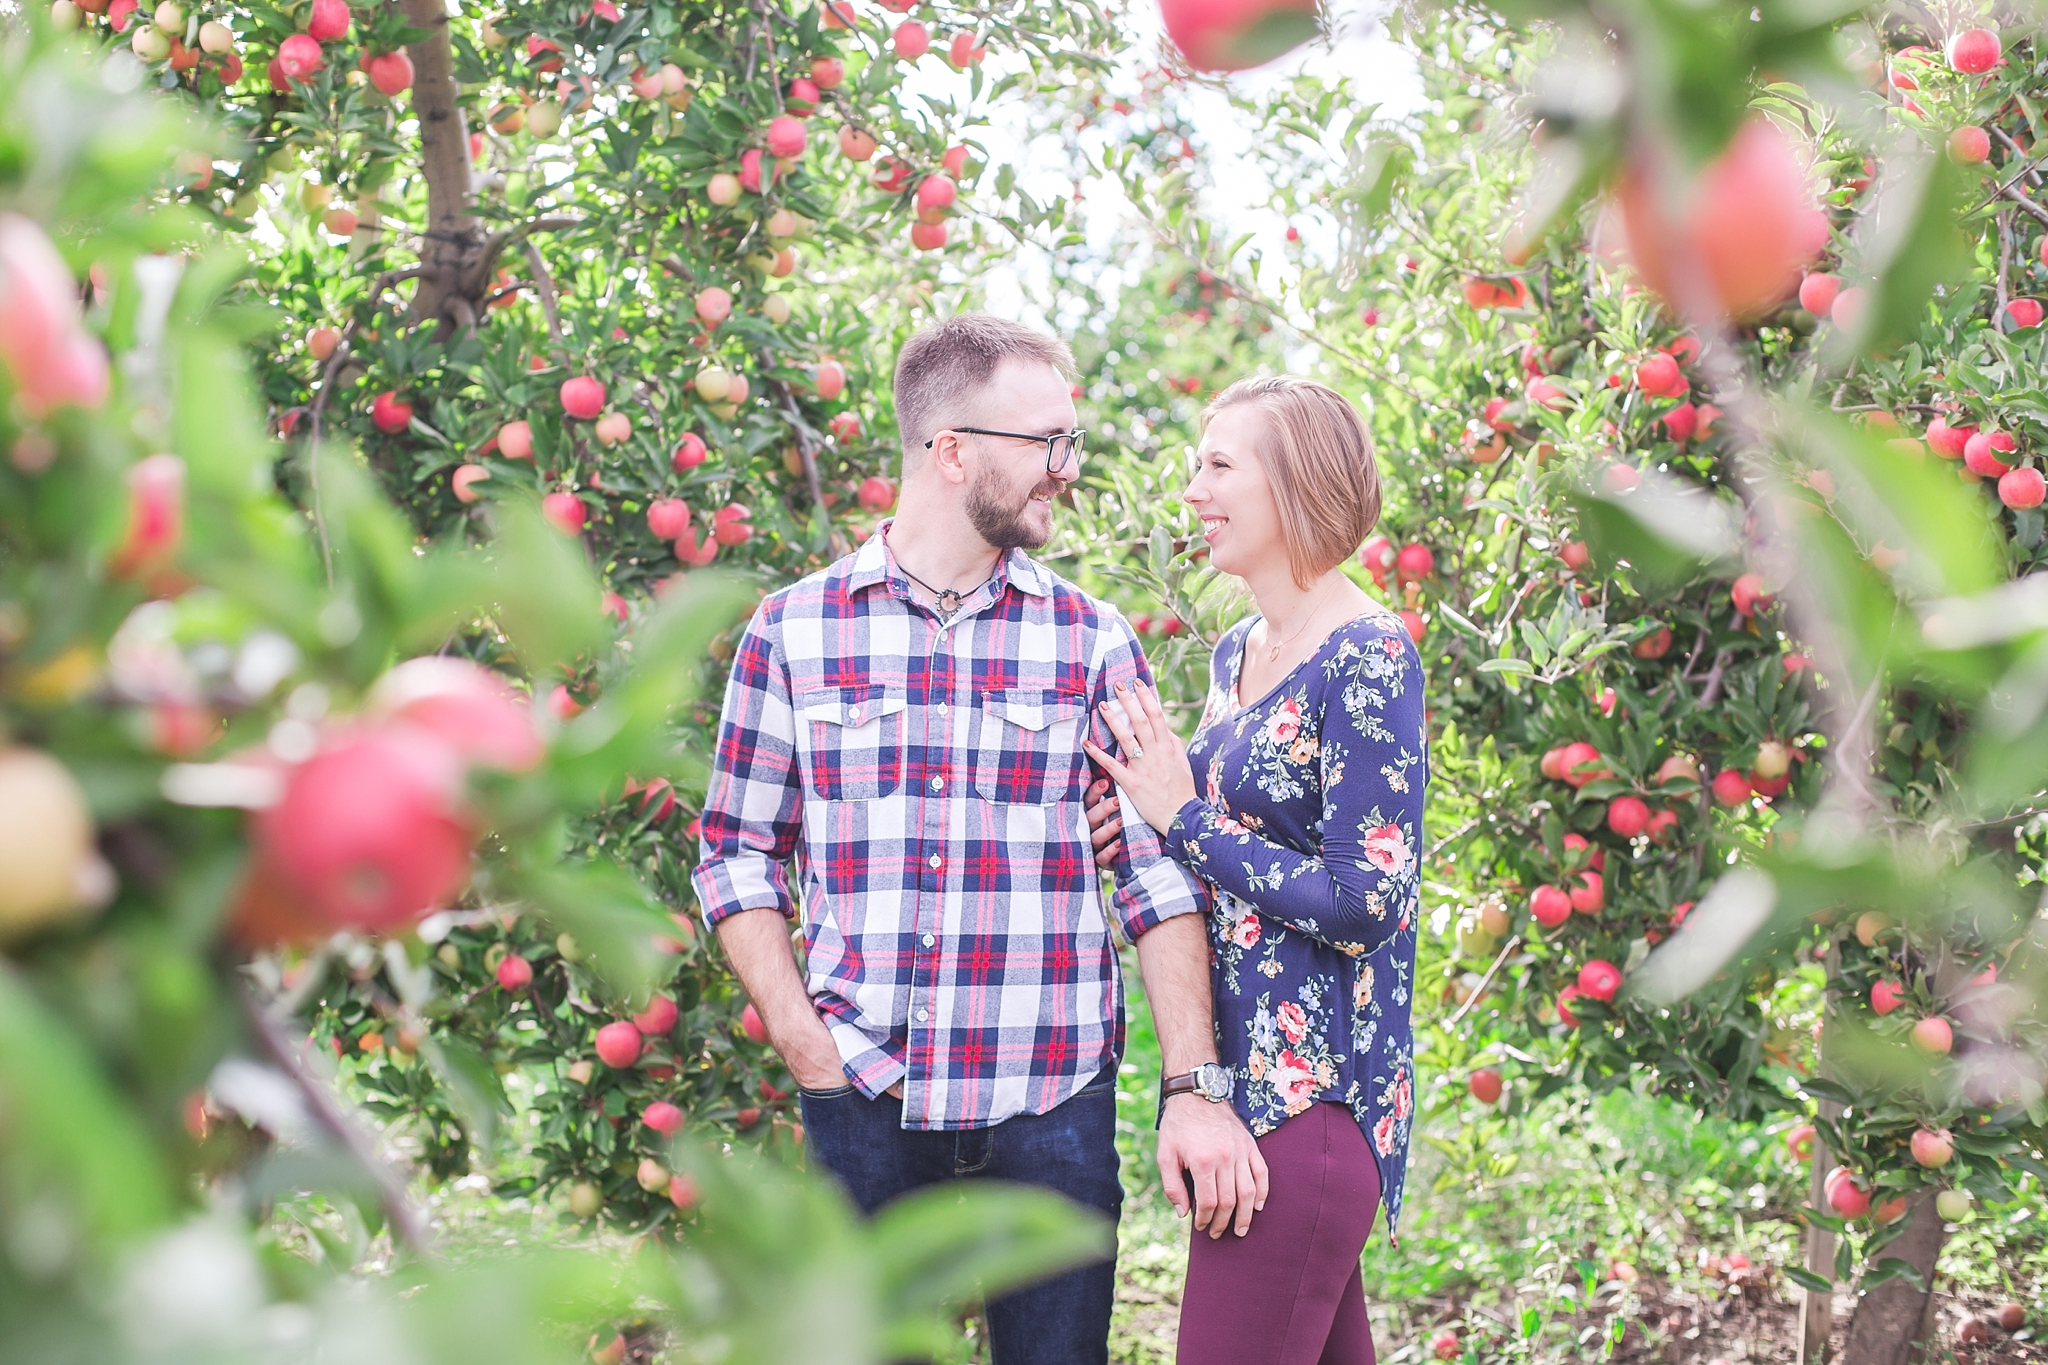 playful-fall-engagement-photos-at-hy's-cider-mill-ochard-in-bruce-township-michigan-by-courtney-carolyn-photography_0022.jpg